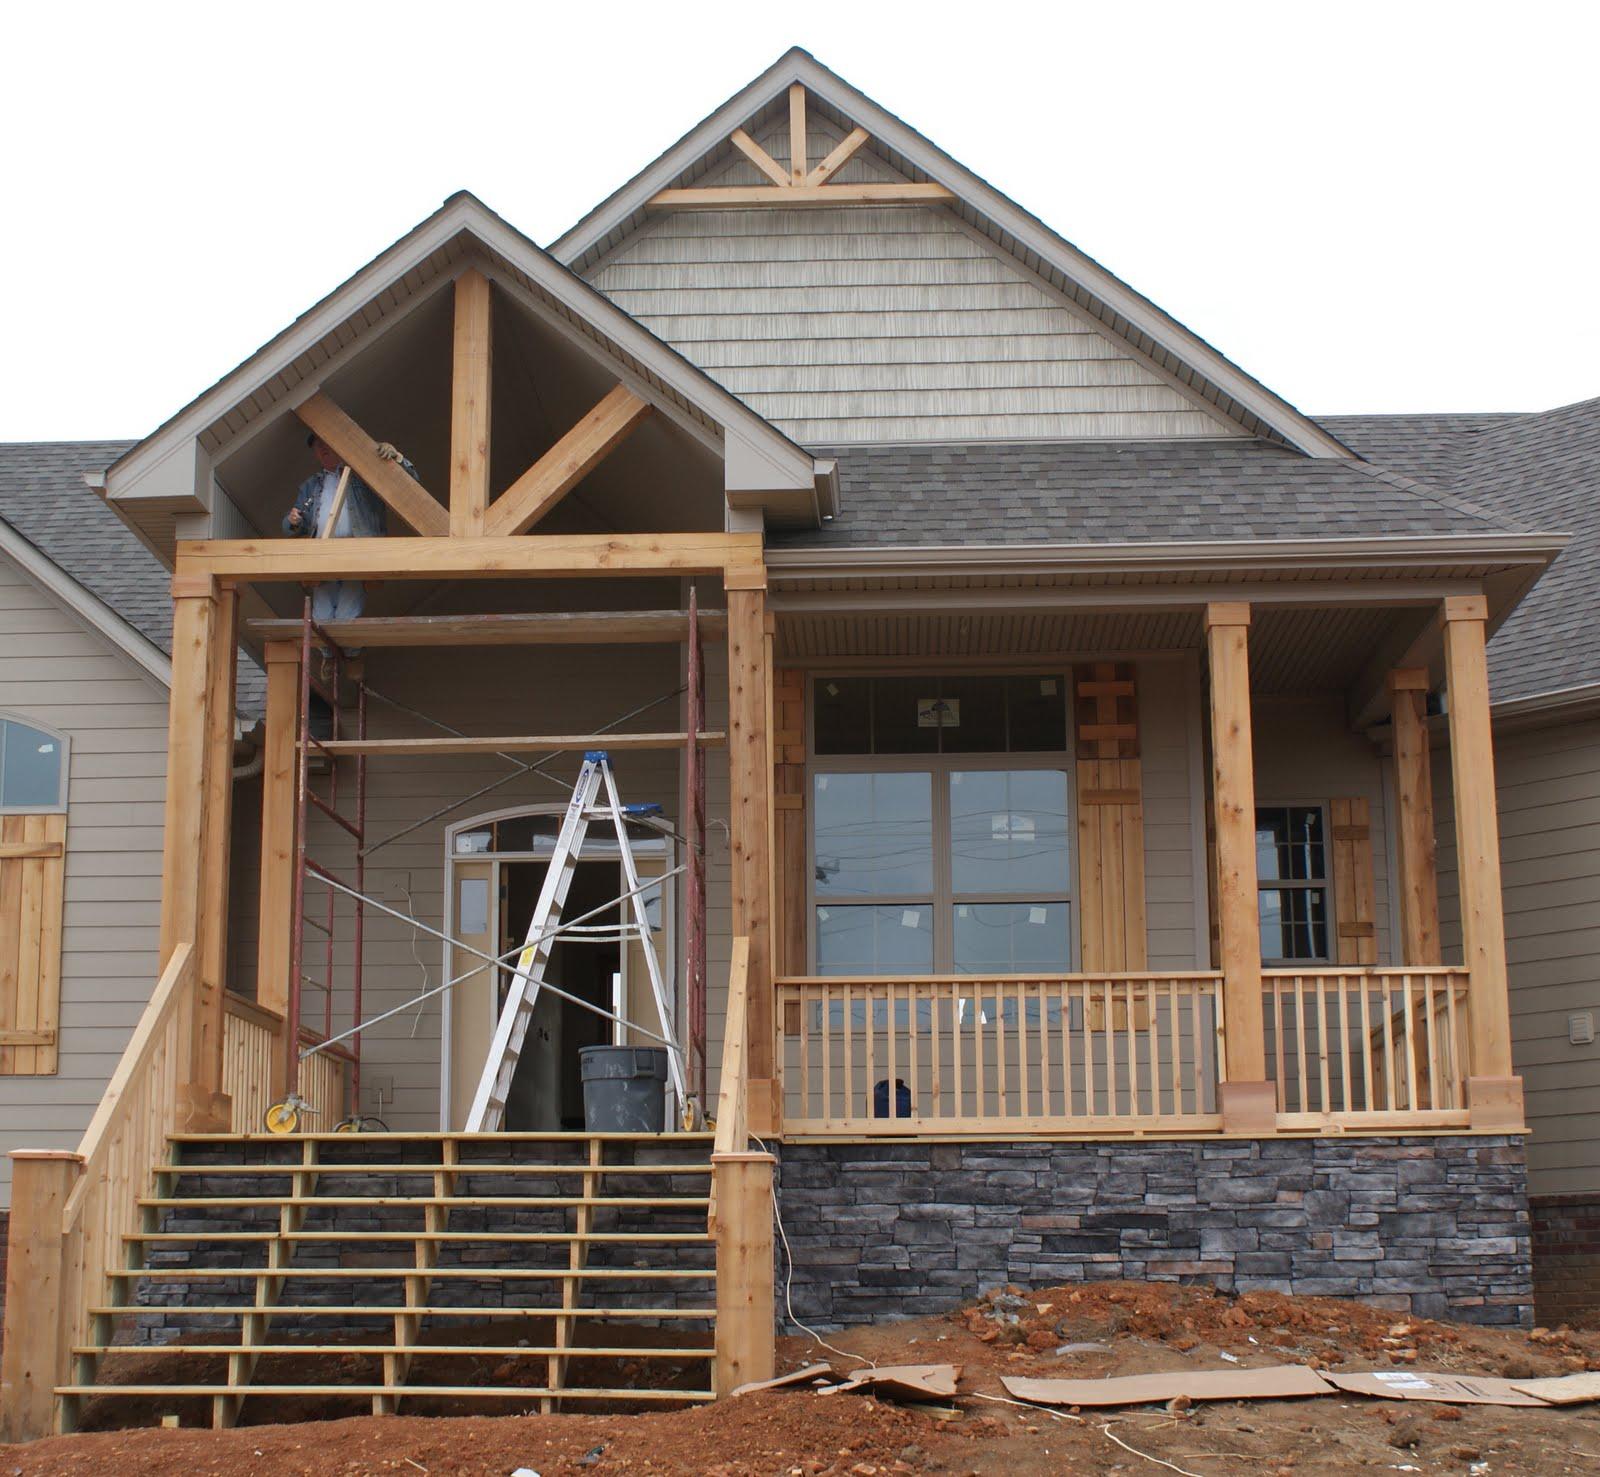 Boss lady 39 s ruminations november 2010 for Front deck designs for houses